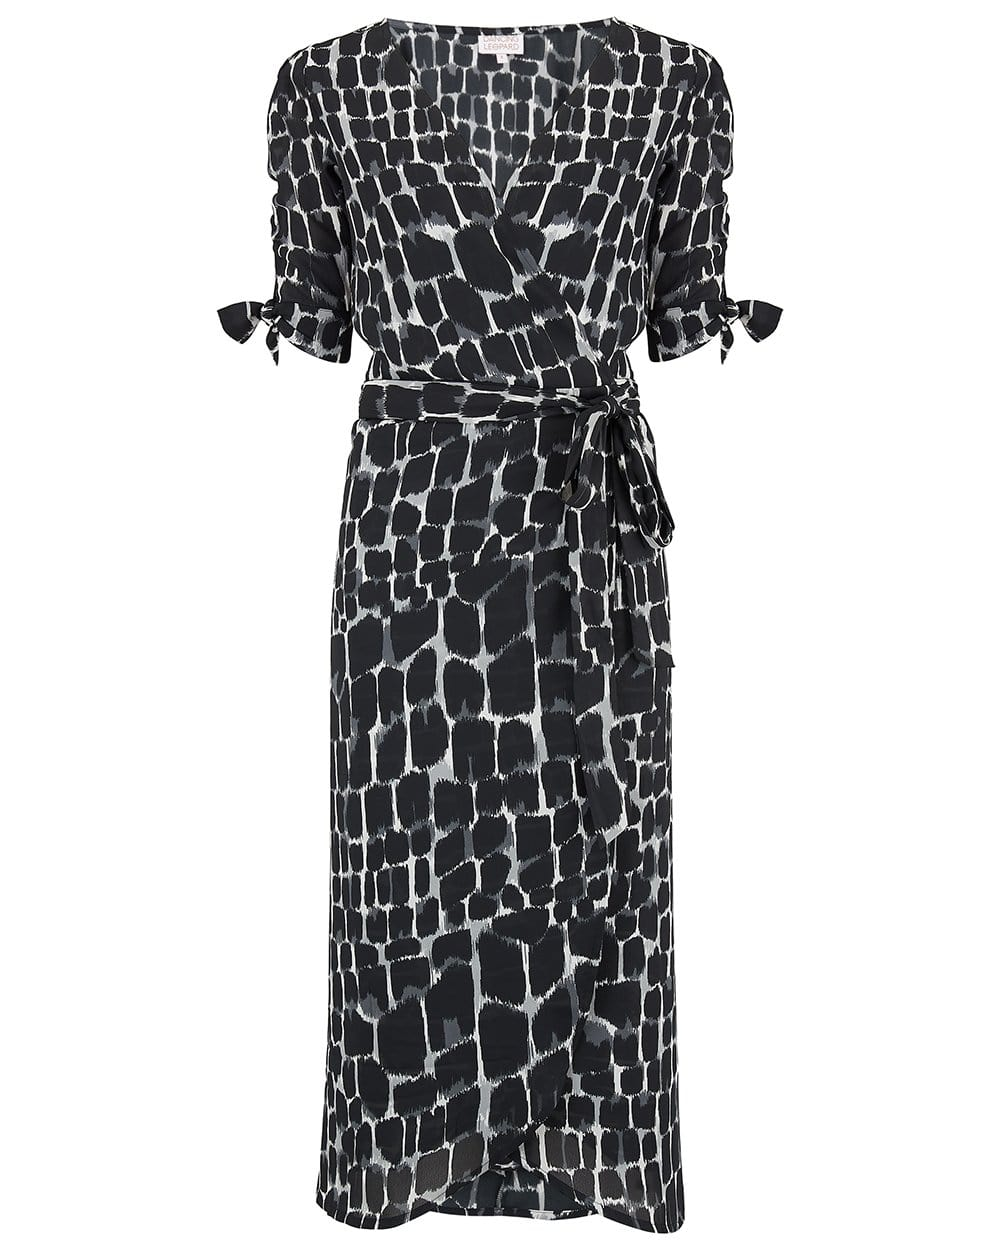 Front view of Olivera Midi Dress in Black & White Alligator Print